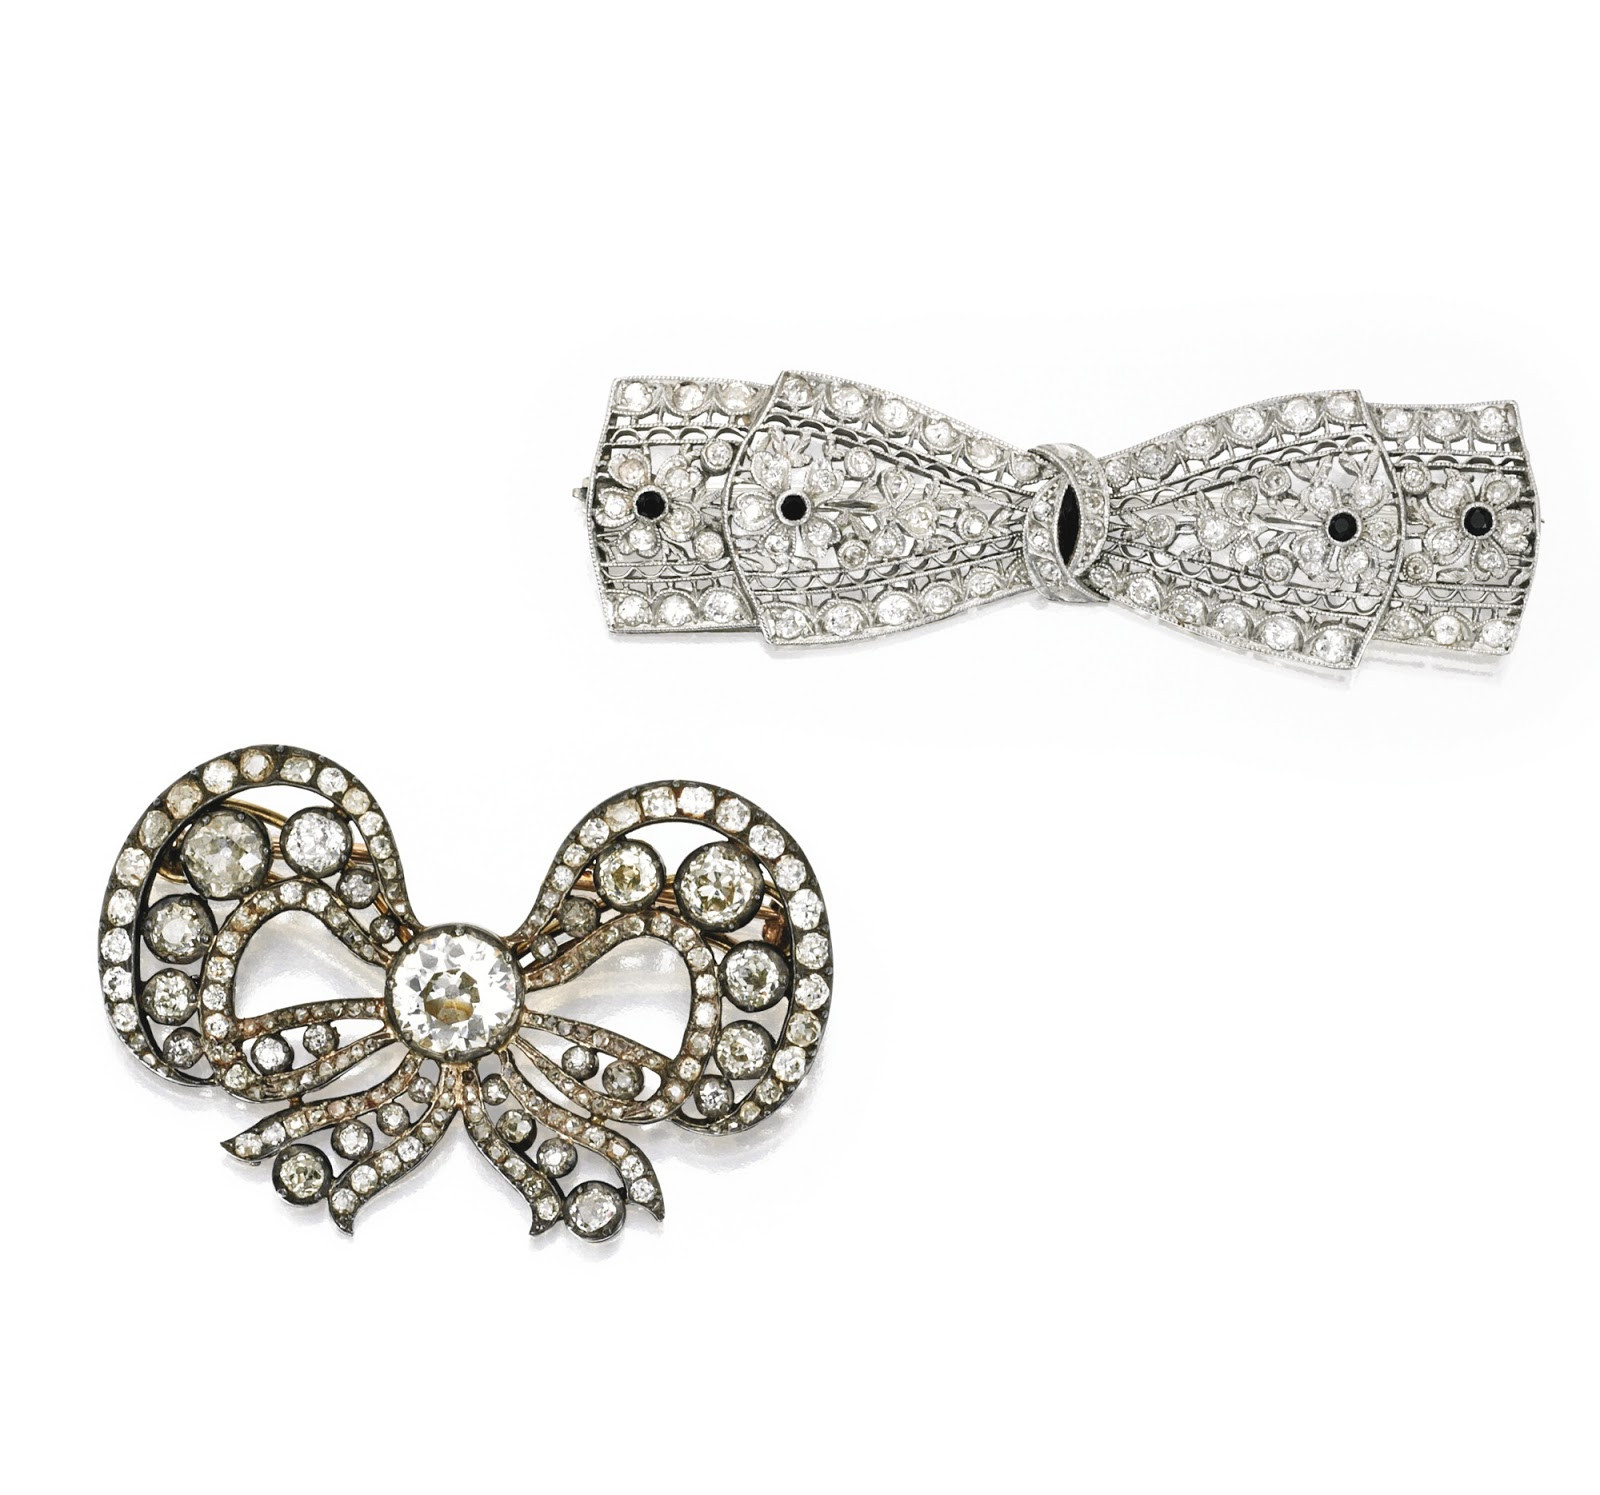 Bow Brooches  Marie Poutine s Jewels & Royals Bow Brooches